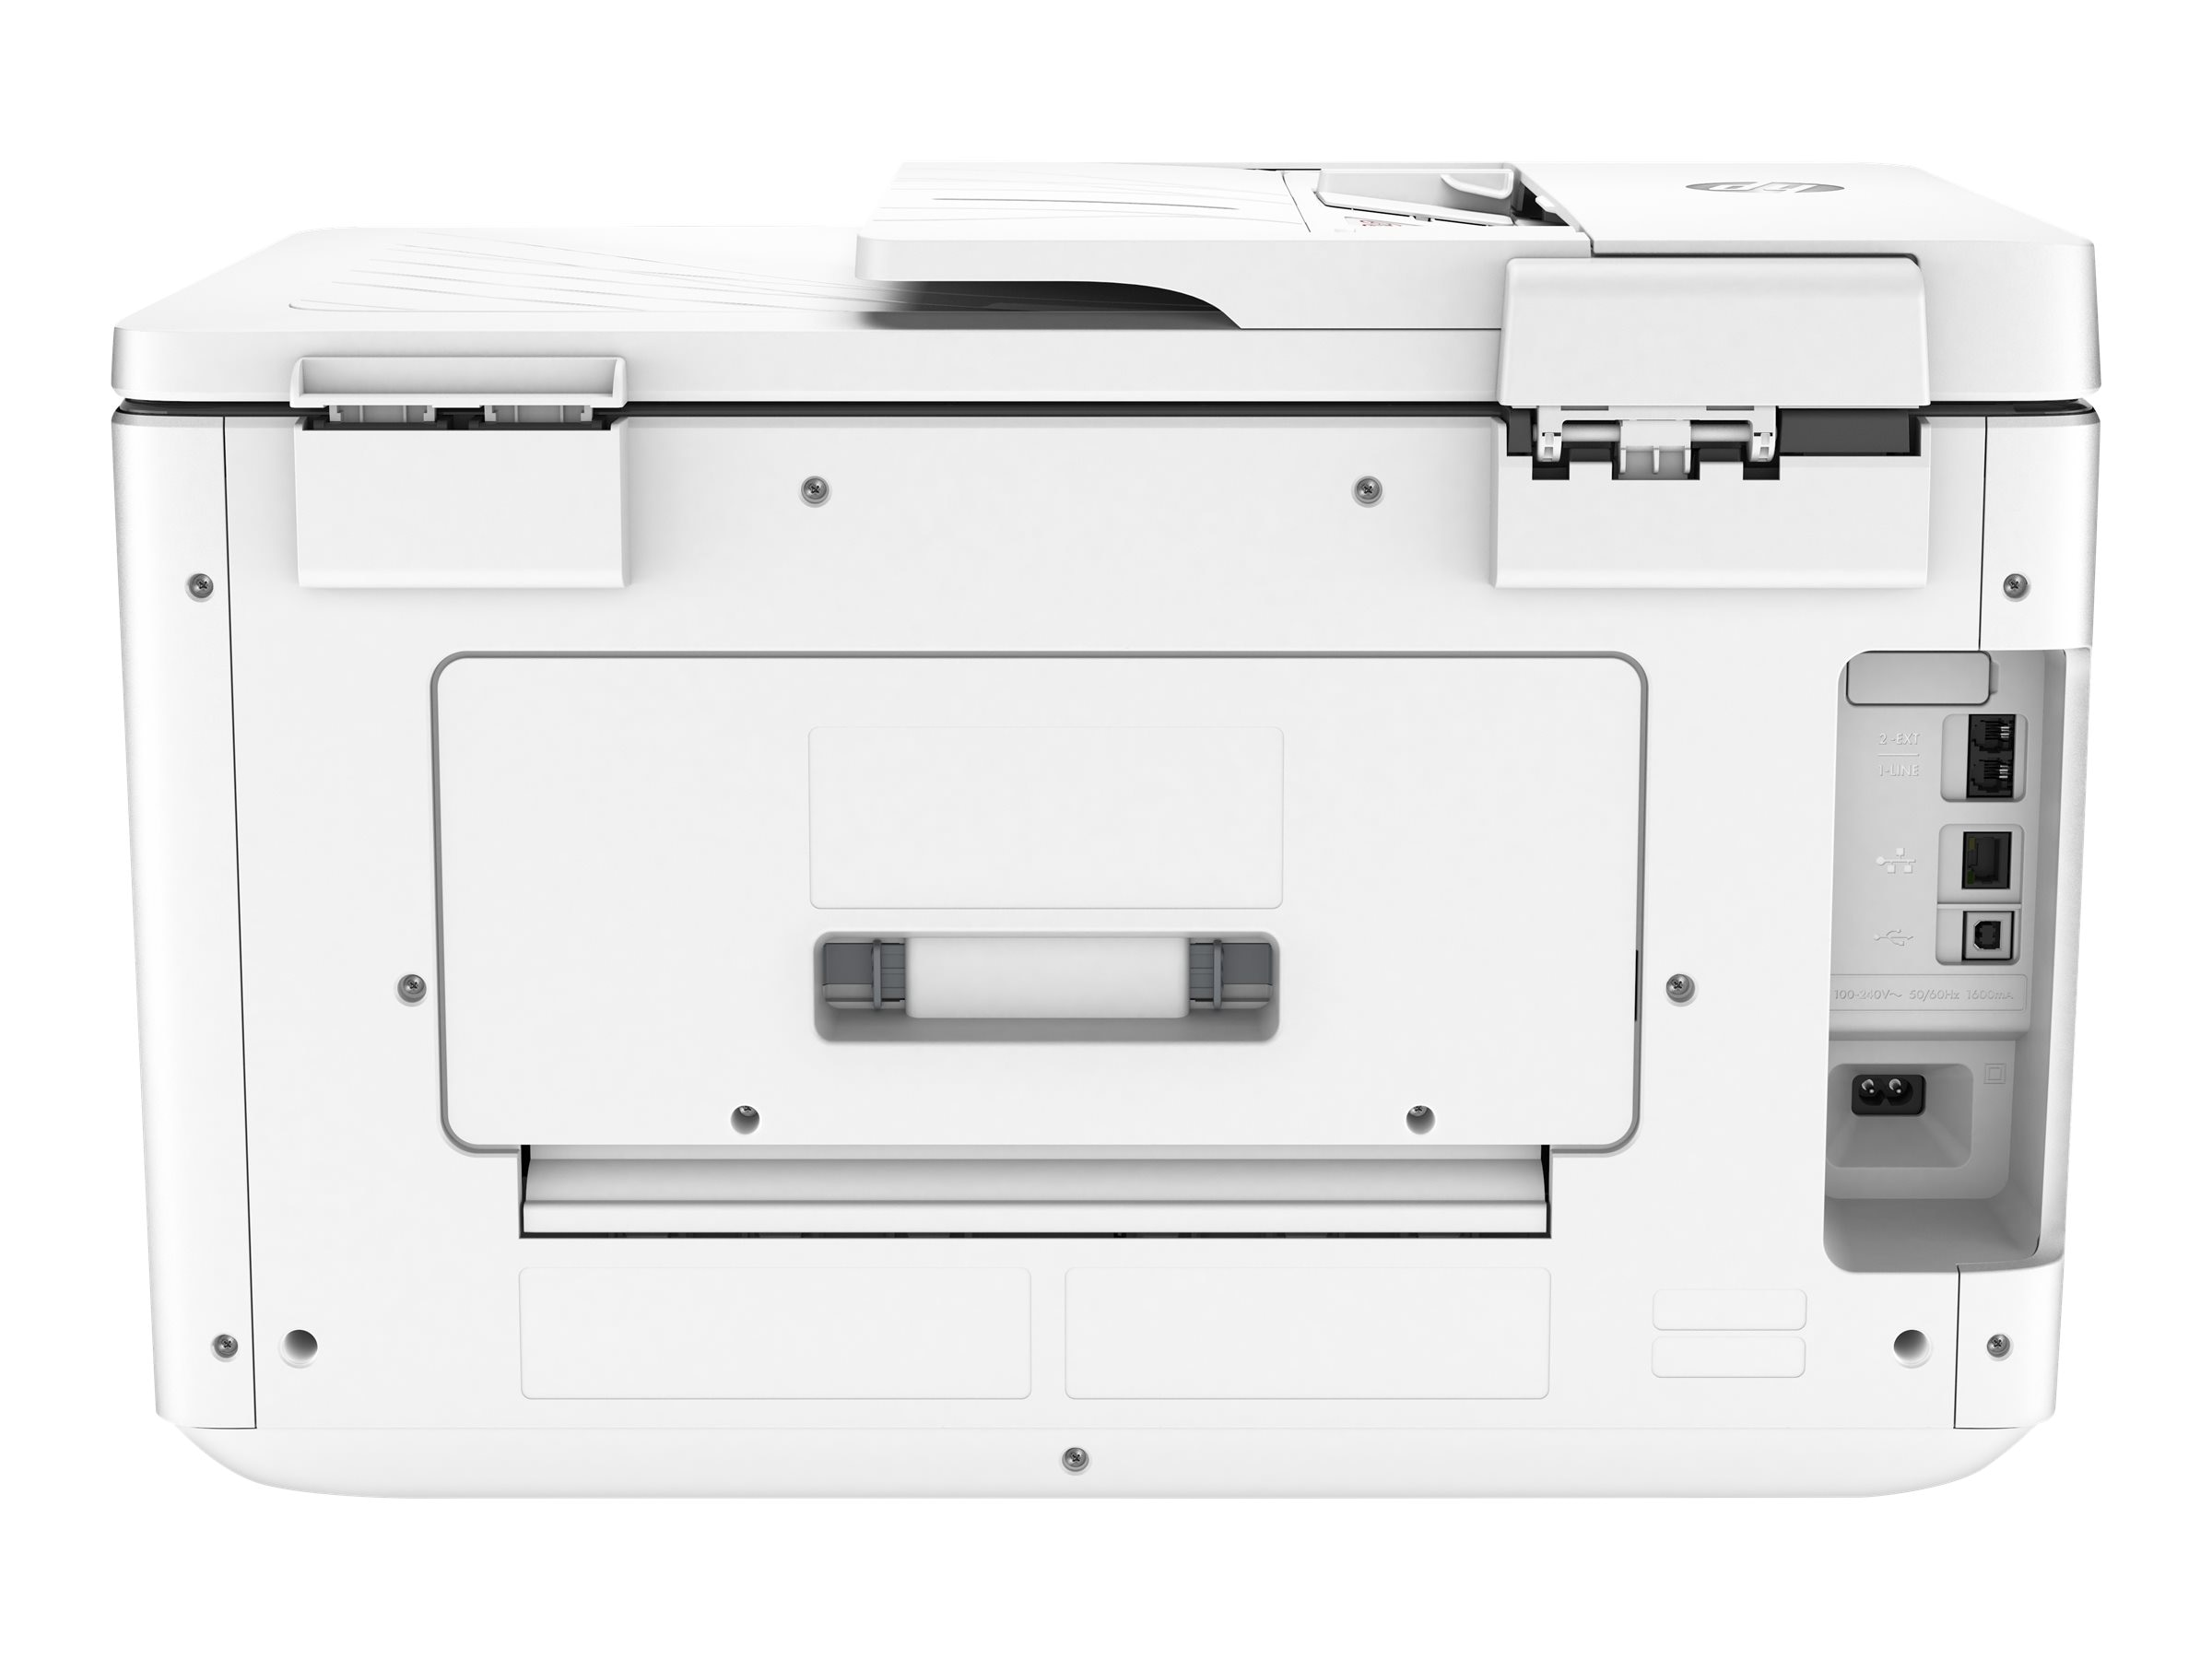 HP OfficeJet Pro 7740 Wide Format AIO Printer, G5J38A#B1H